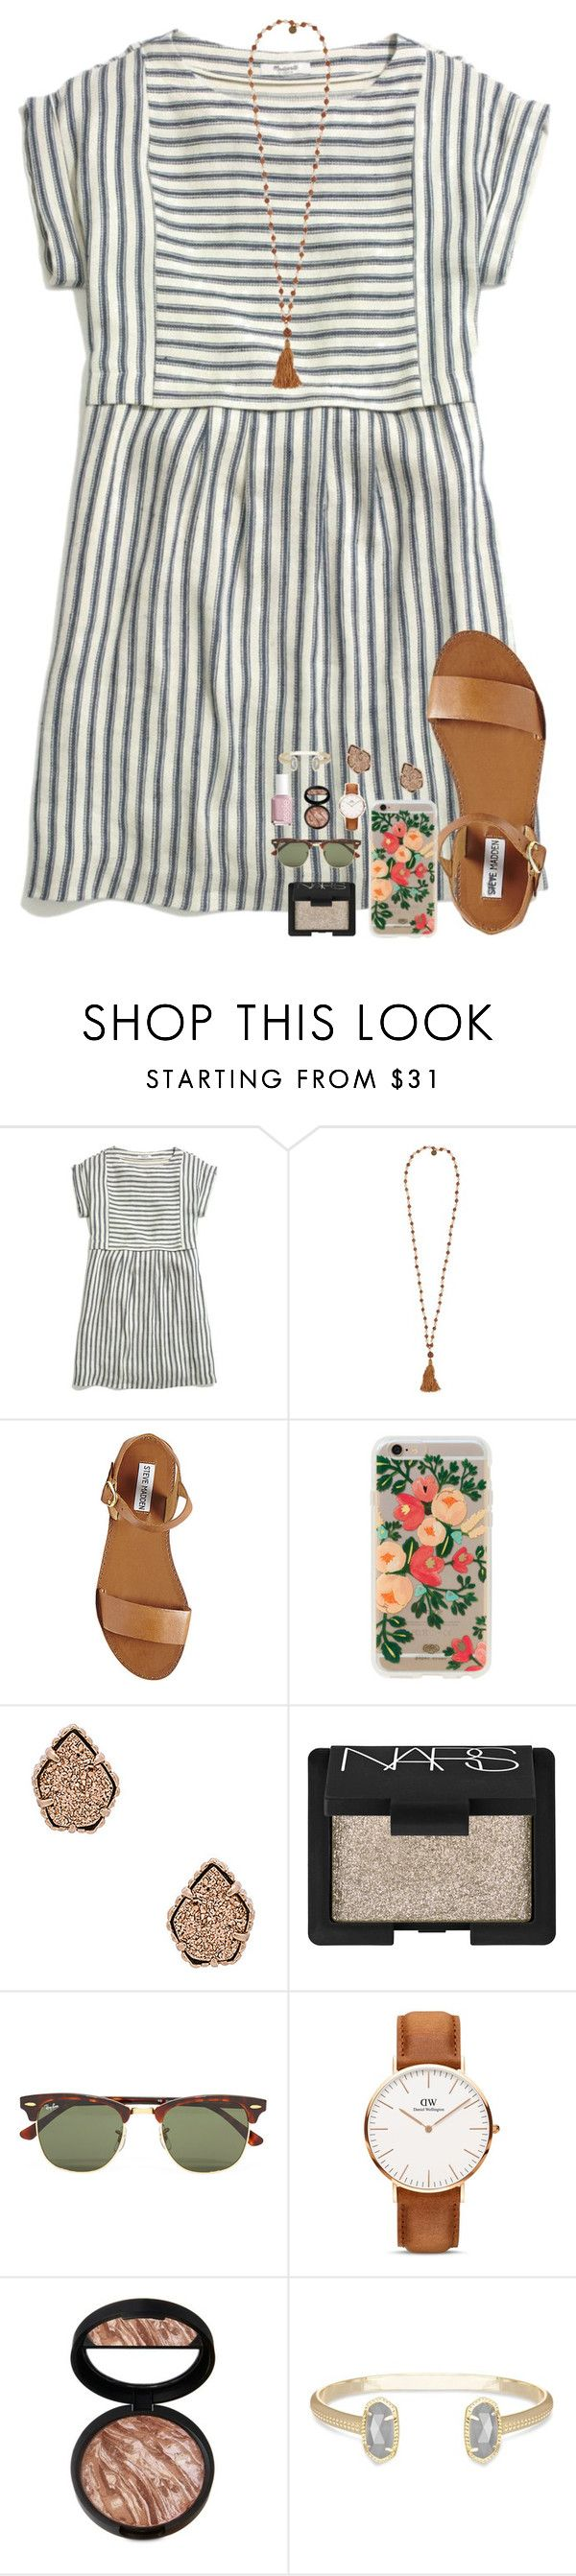 """""""getting close to 1K!!!"""" by morganmestan ❤ liked on Polyvore featuring Madewell, Cocobelle, Steve Madden, Rifle Paper Co, Kendra Scott, NARS Cosmetics, Ray-Ban, Daniel Wellington and Essie"""